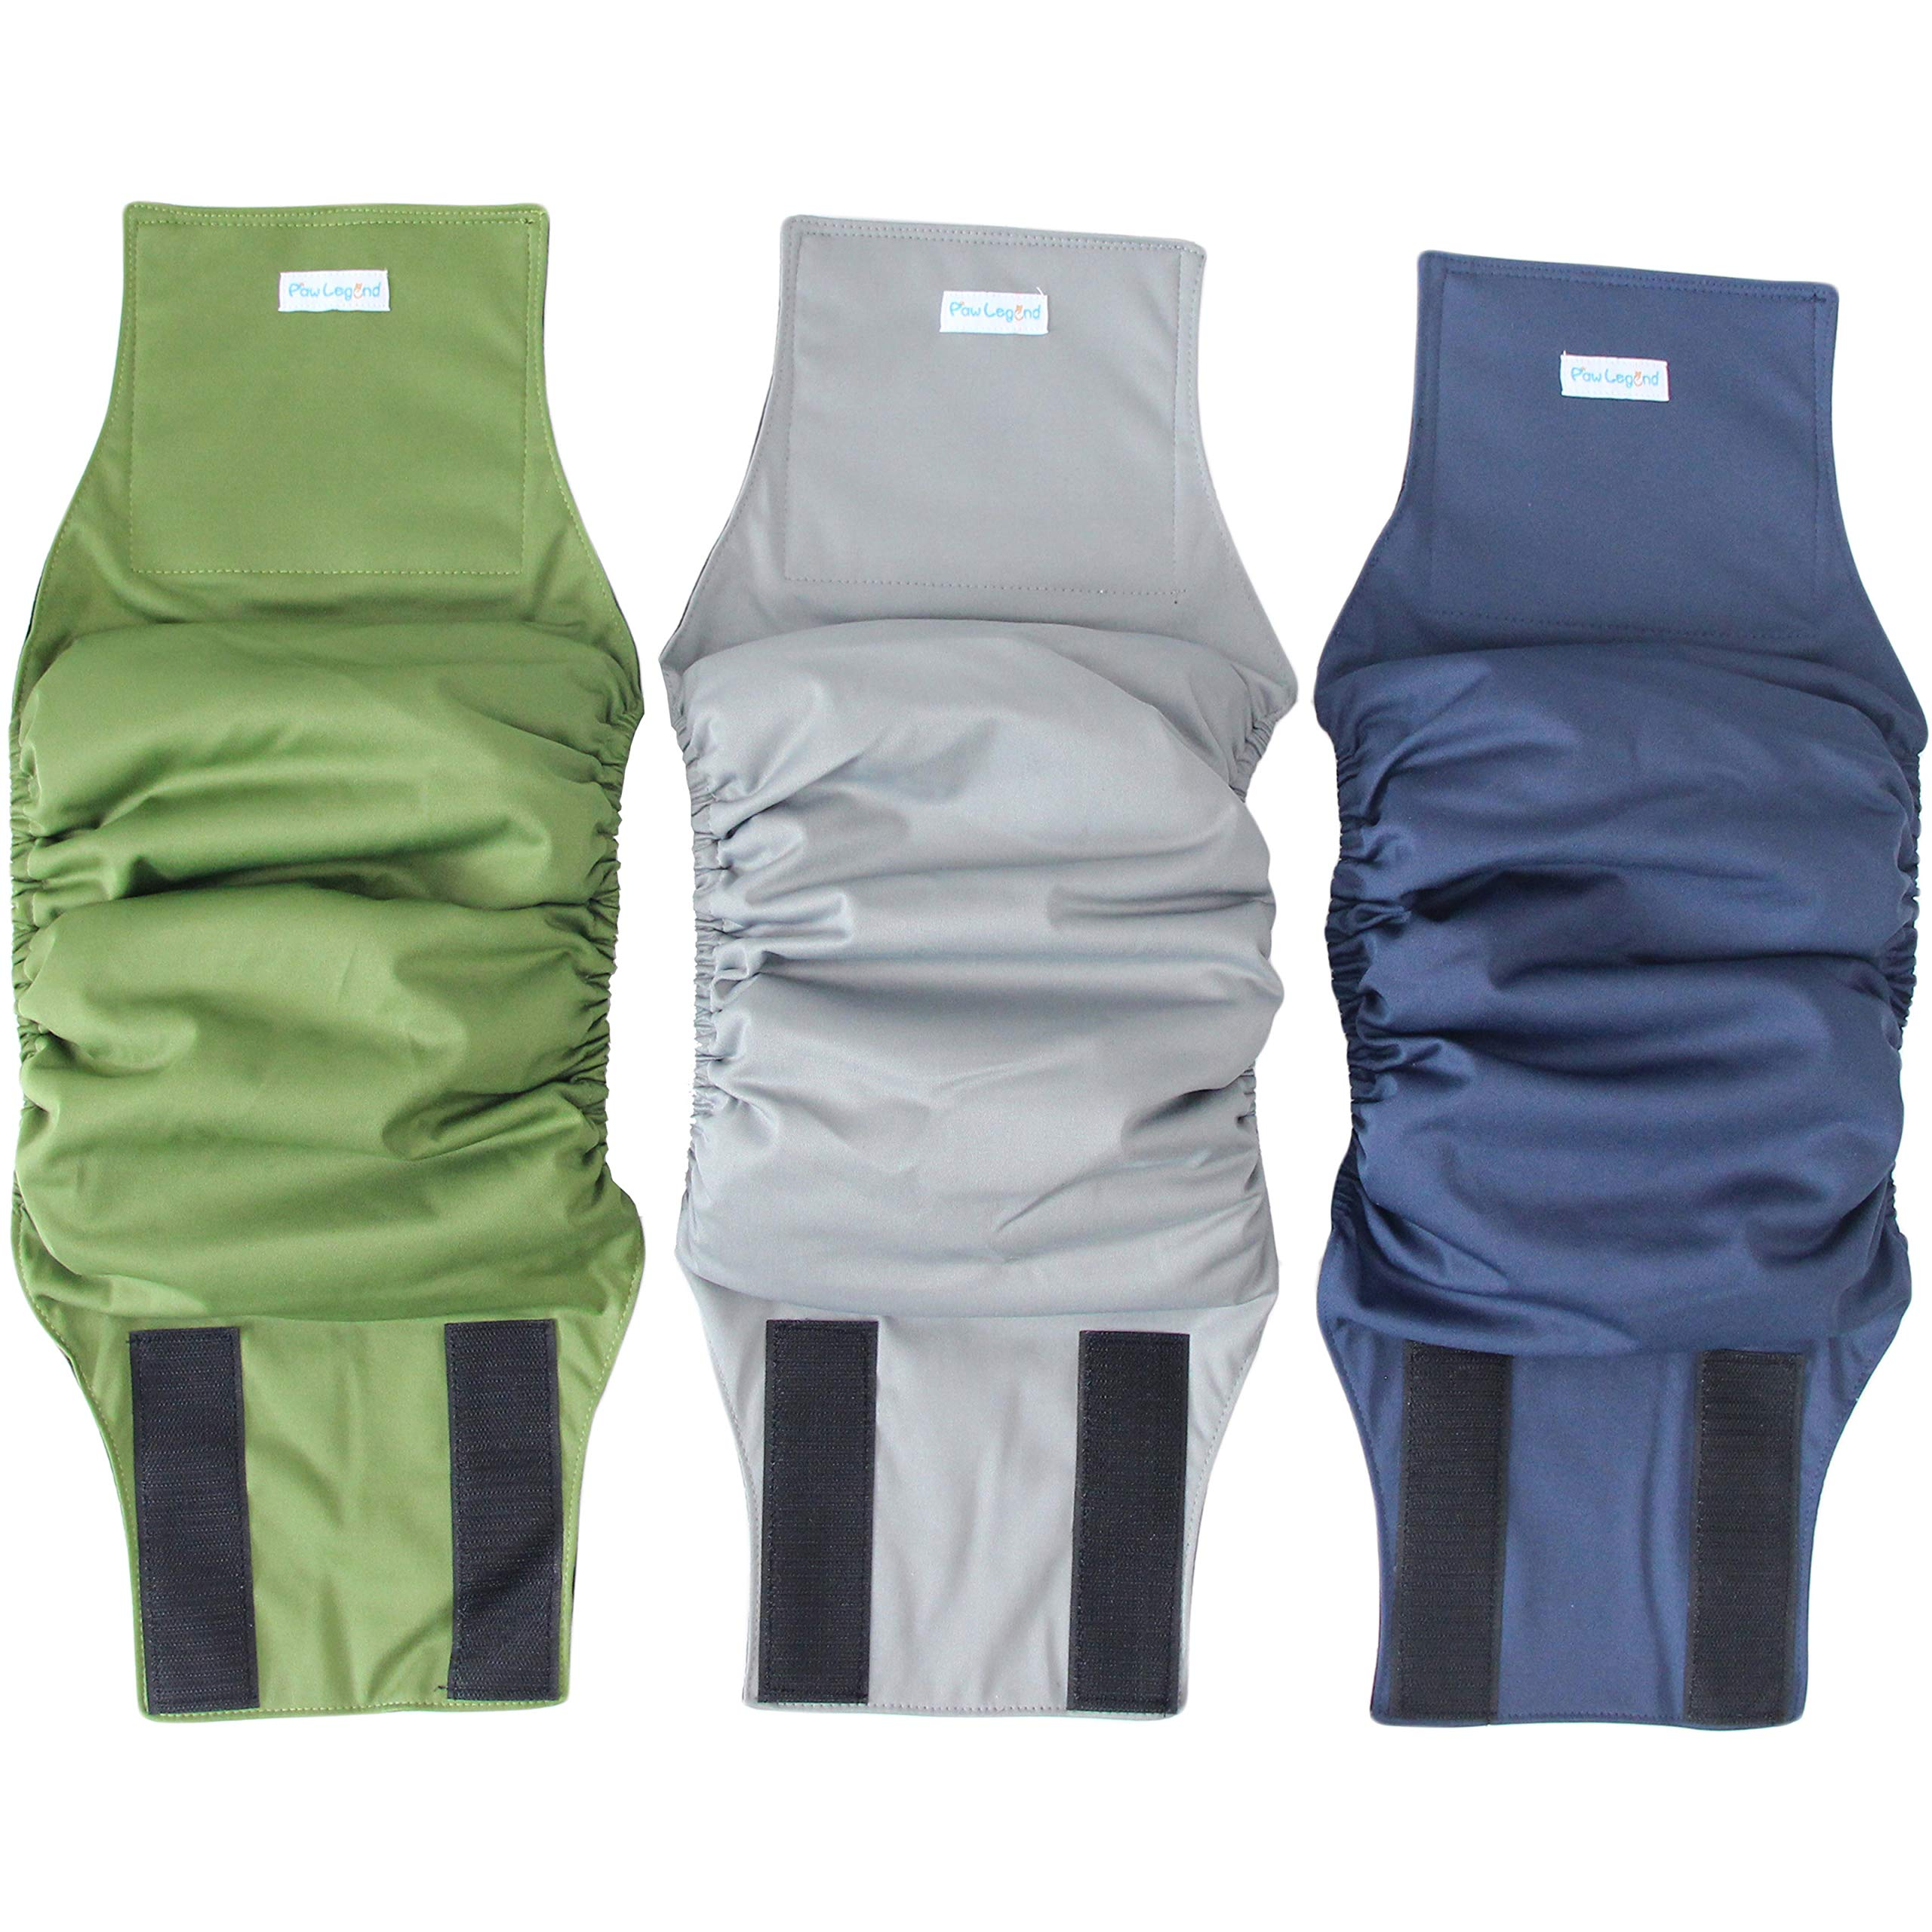 Paw Legend Washable Dog Belly Wrap Diapers for Male Dog (3 Pack)